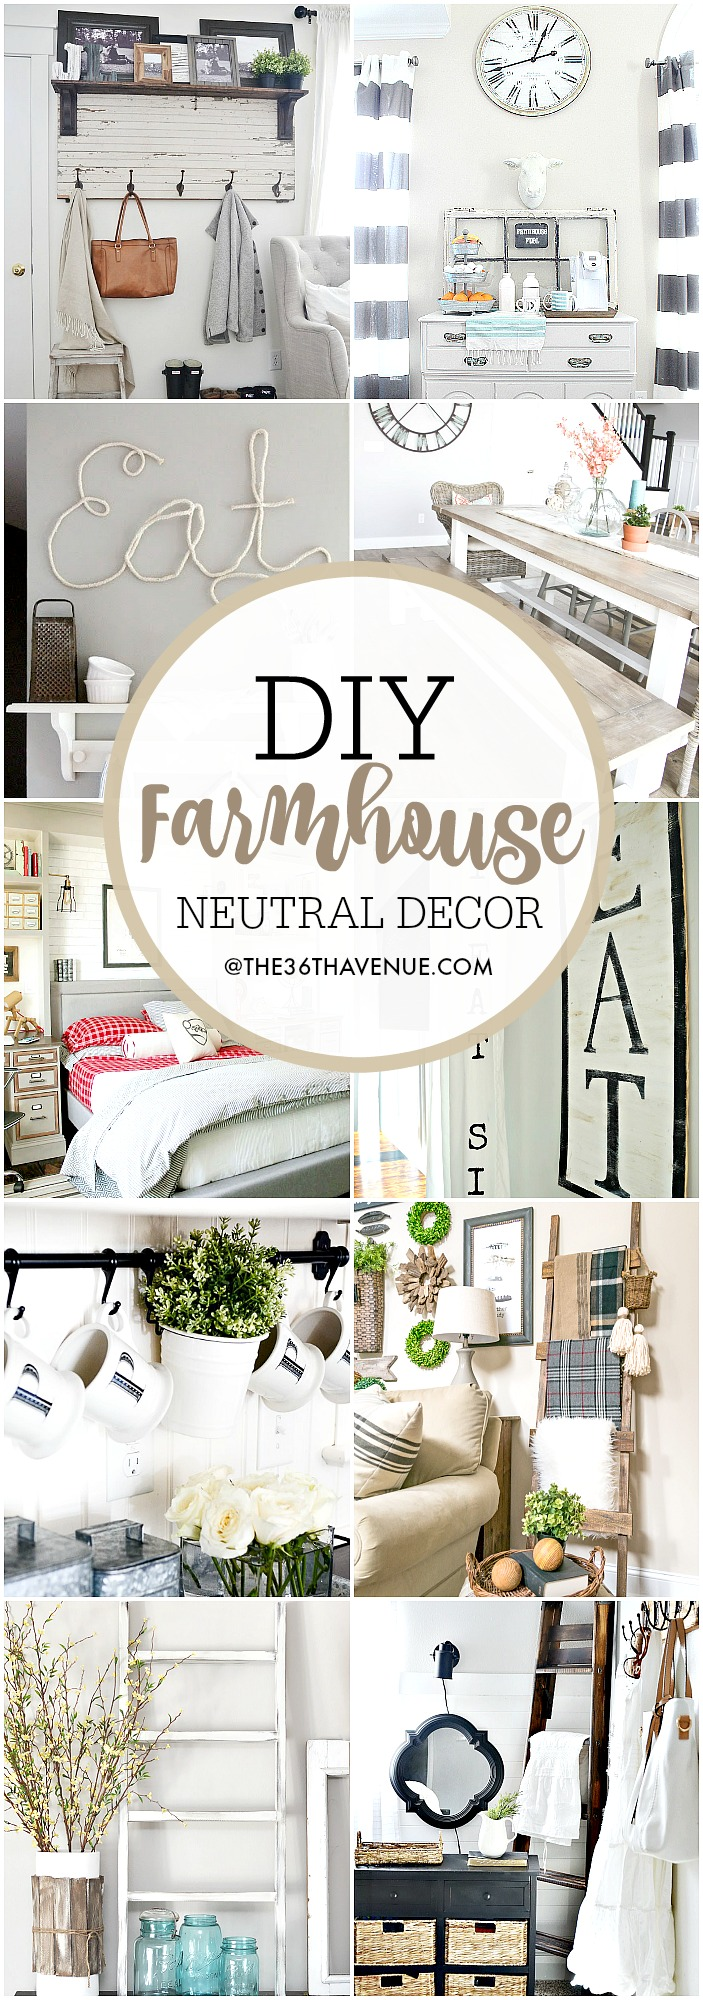 Farmhouse DIY Decor Ideas